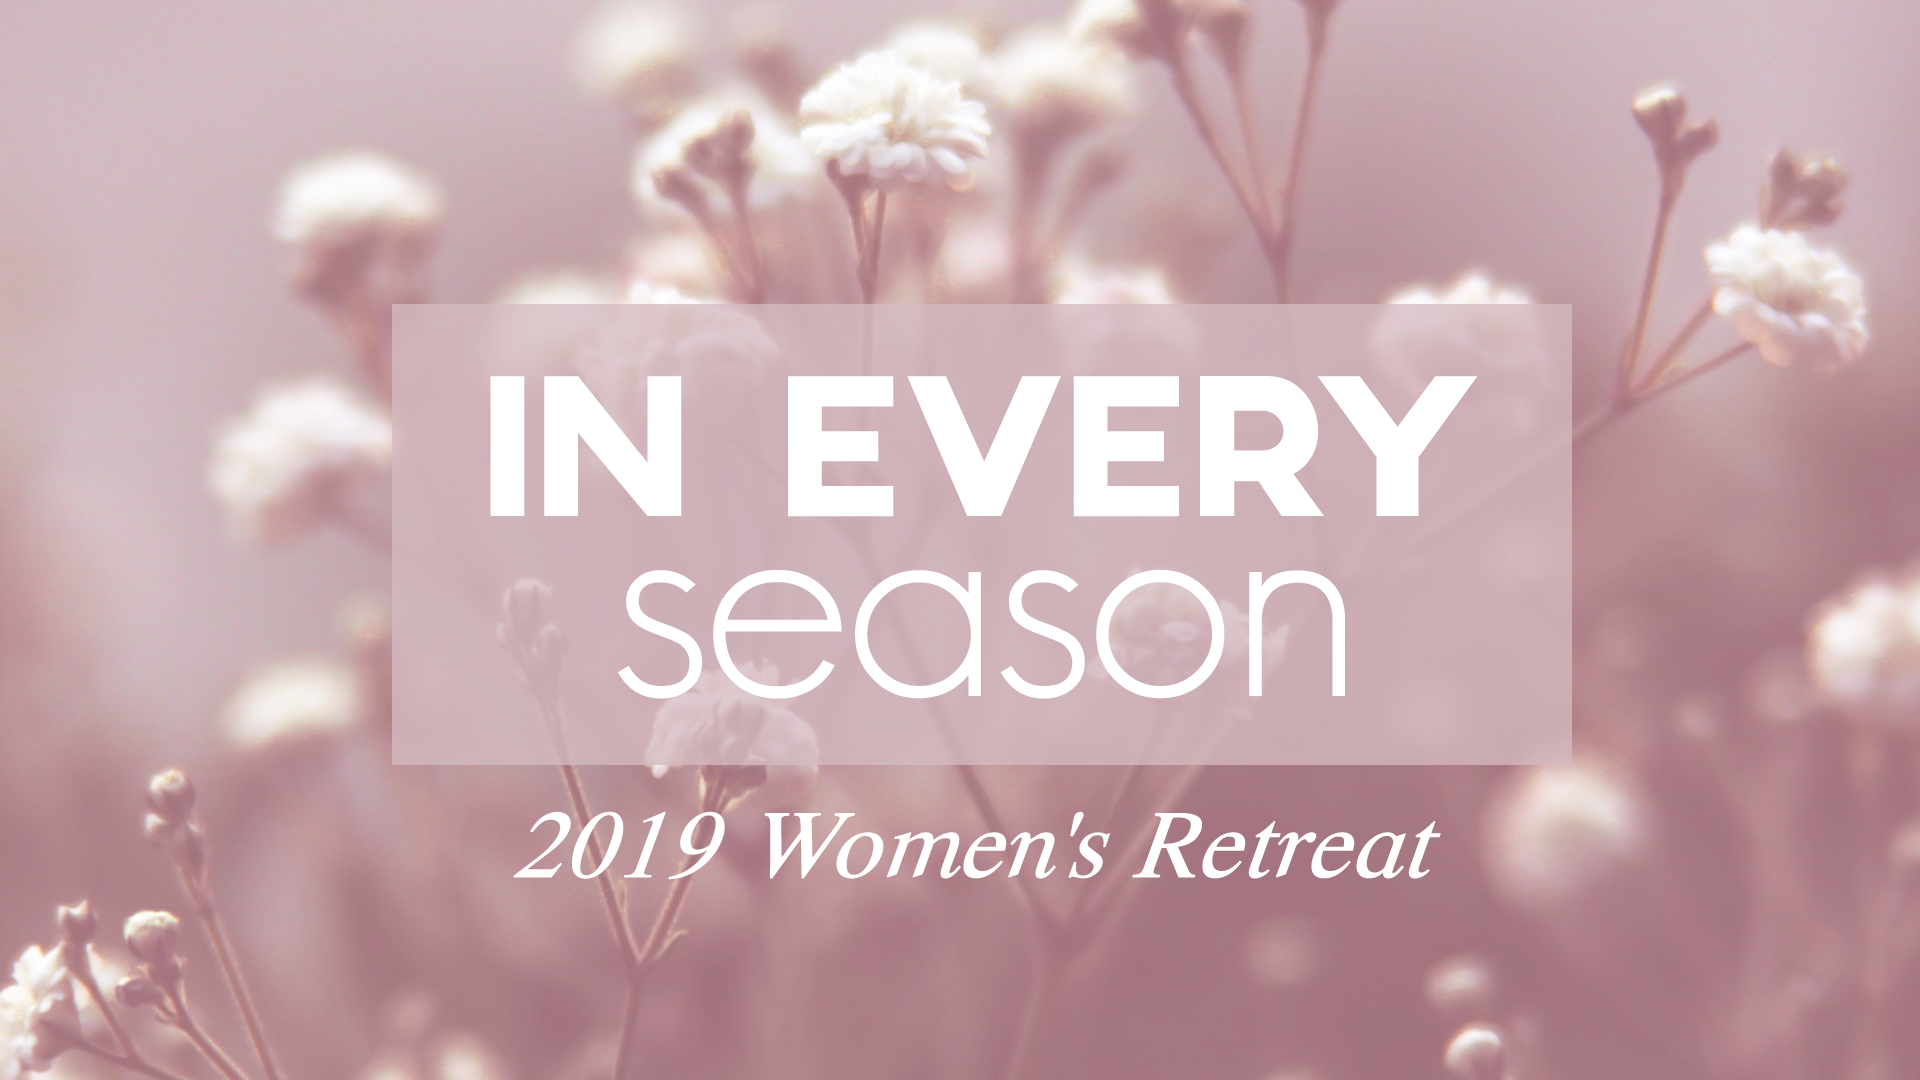 In Every Season - 2019 Women's Retreat.jpg